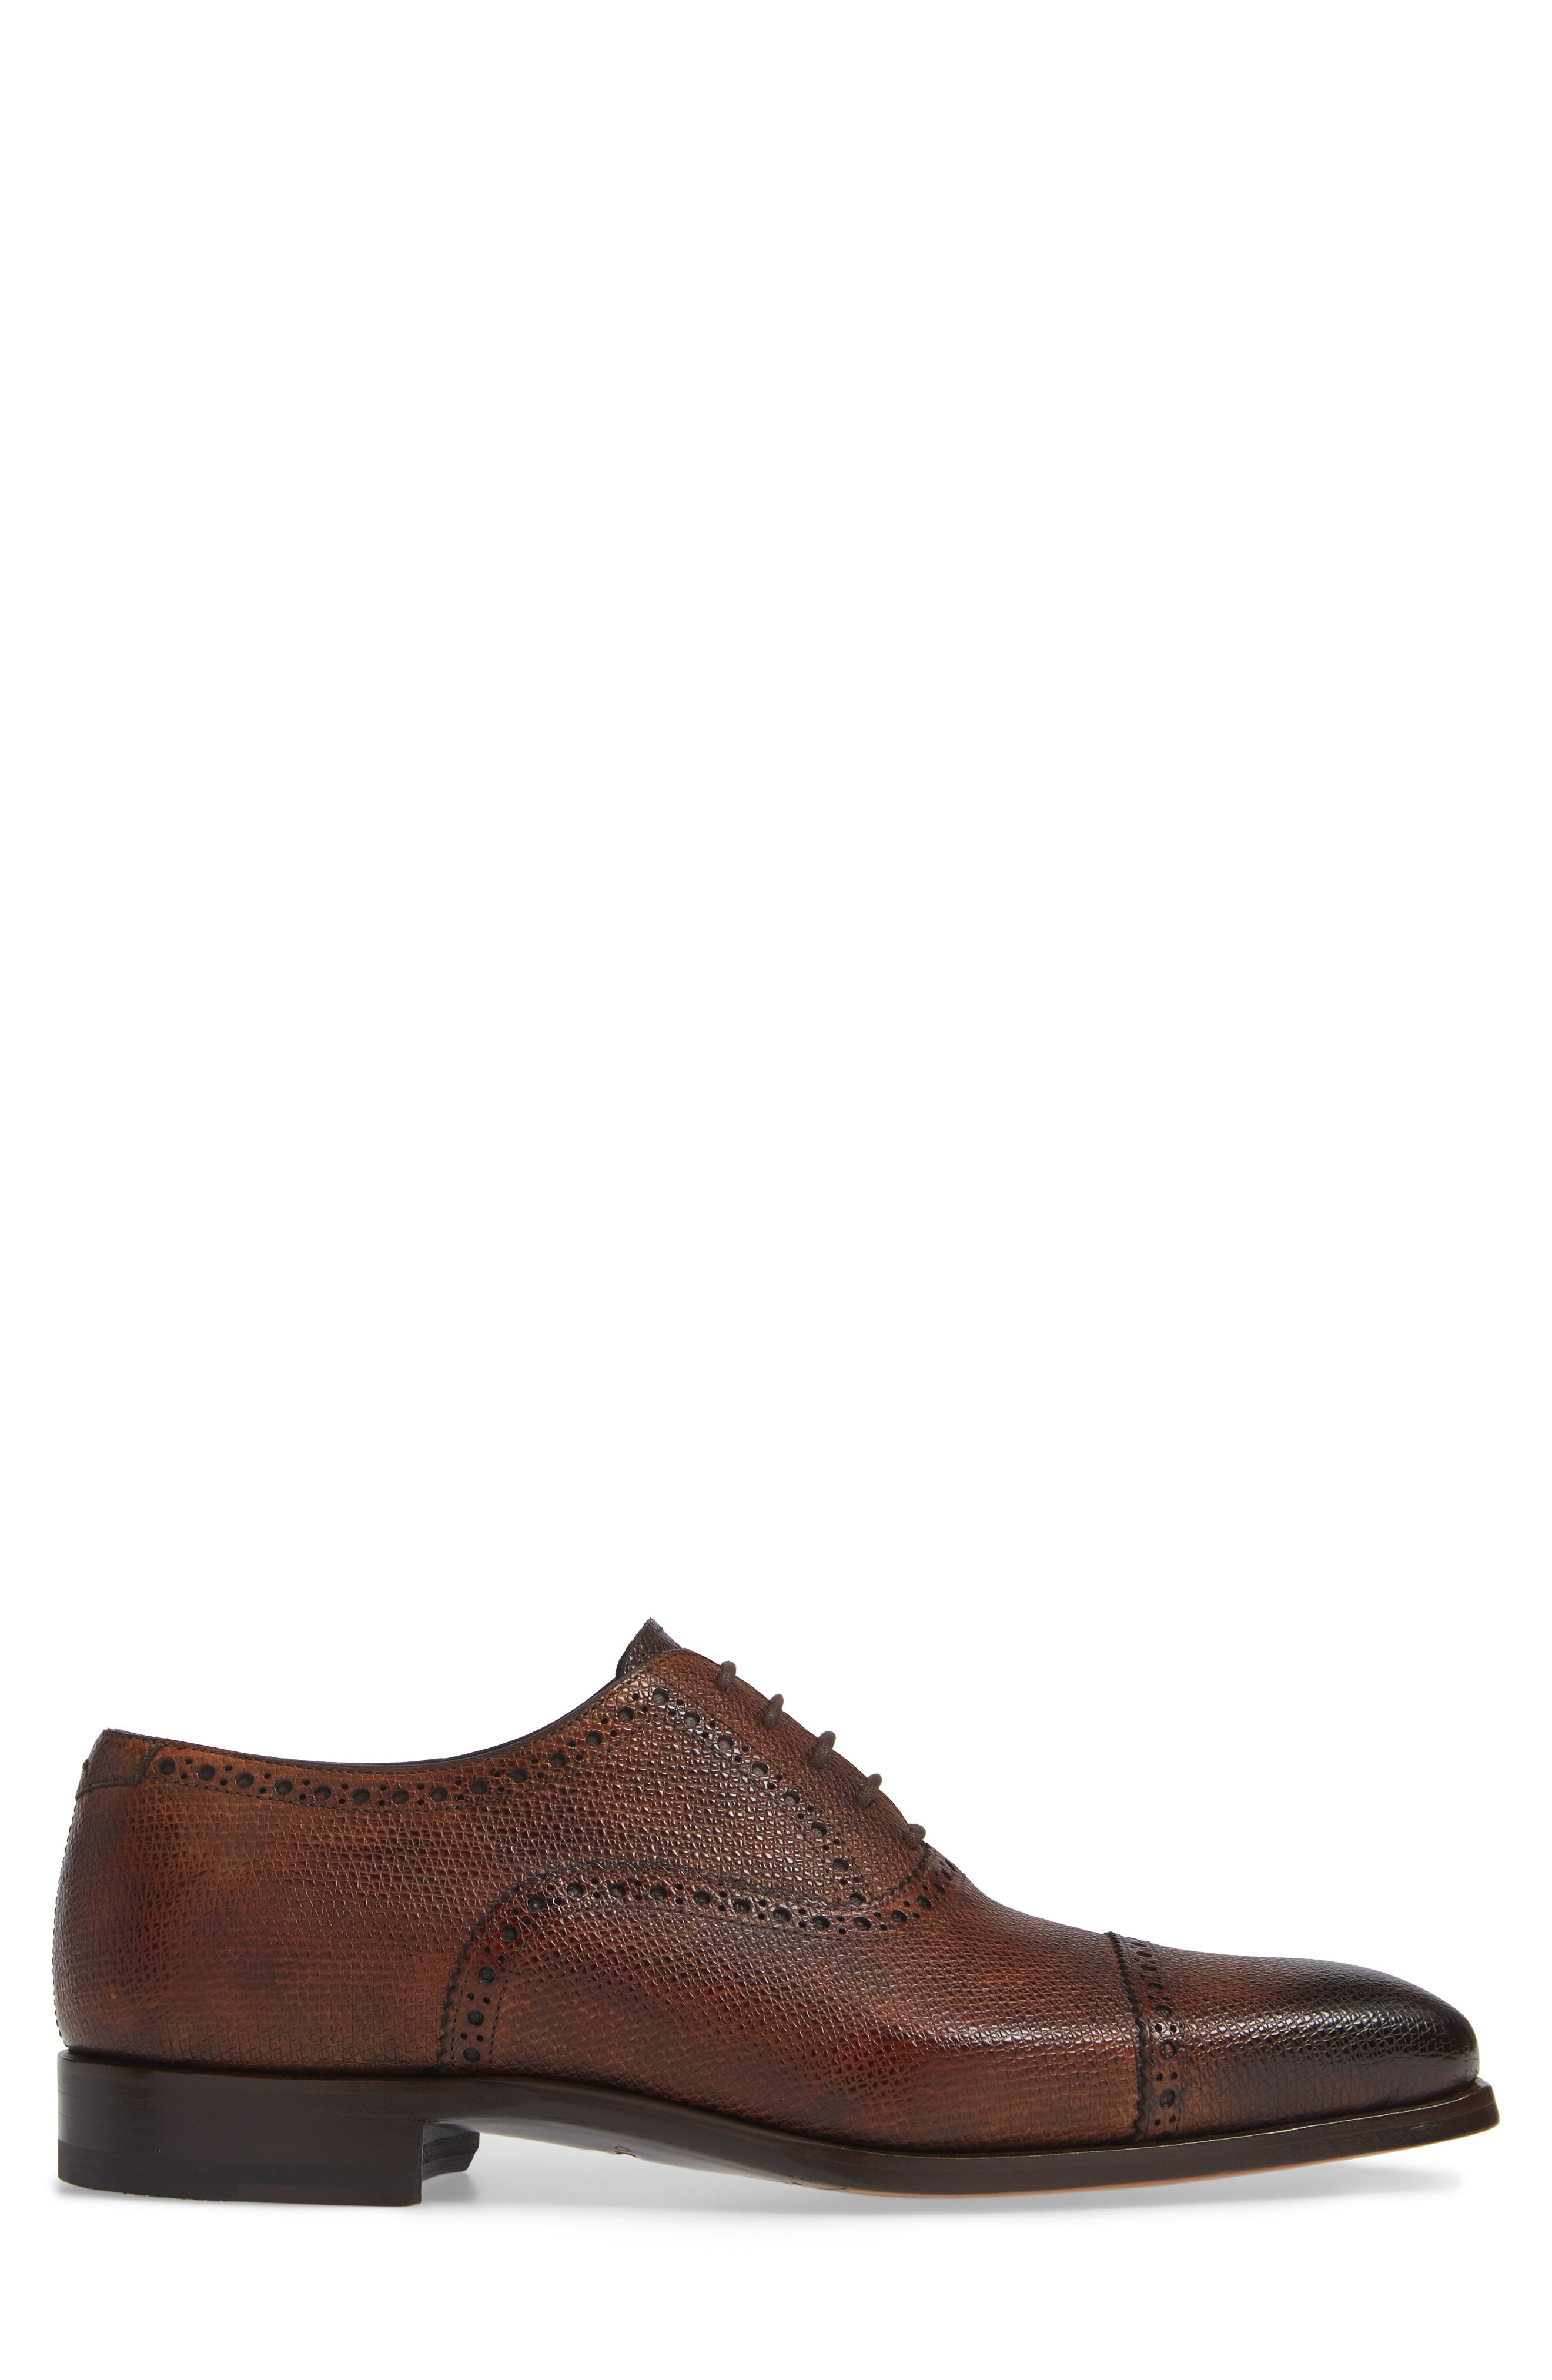 Charlton Cap Toe Oxford,                             Alternate thumbnail 3, color,                             MID BROWN LEATHER